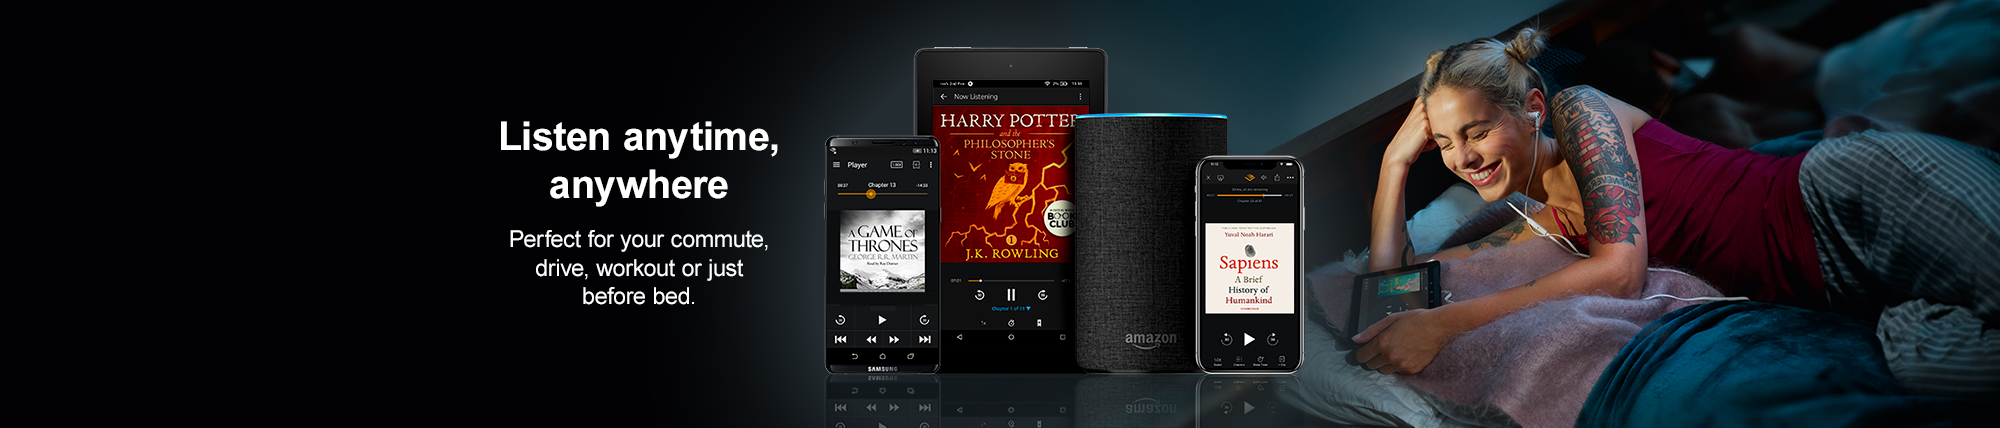 Audible uk free audiobook with 30 day trial 4 out of 5 stars fandeluxe Gallery